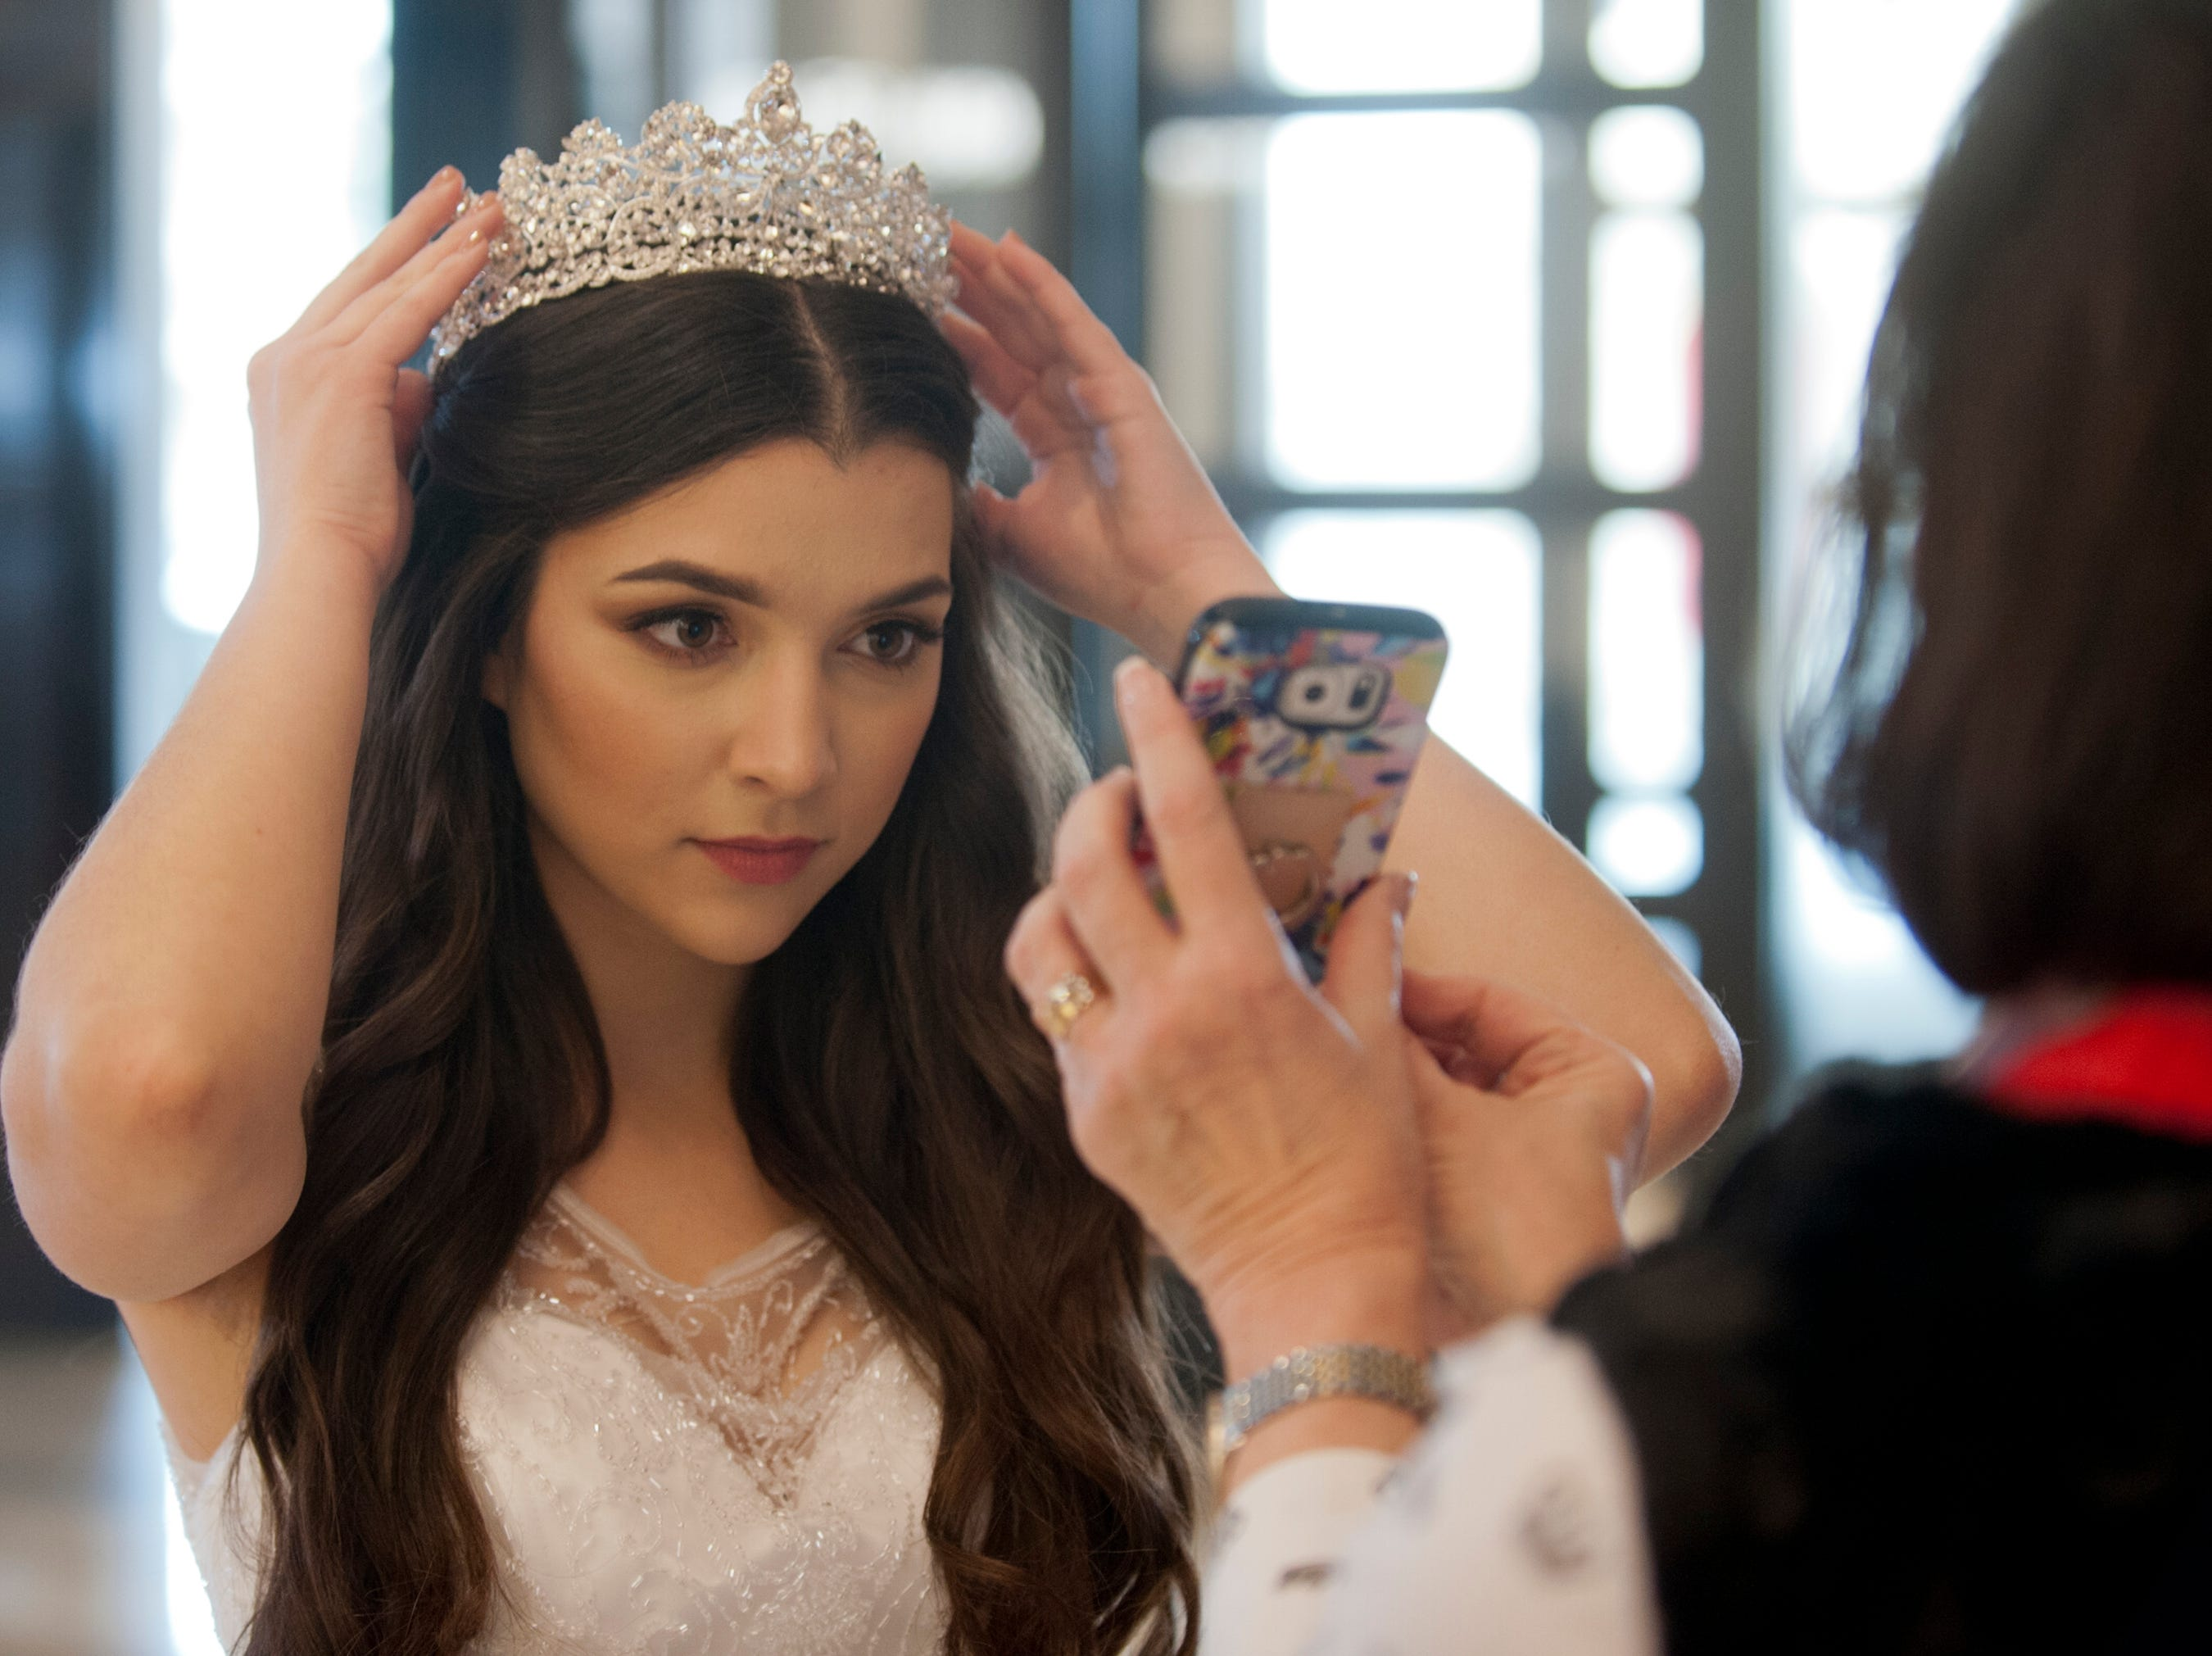 Kentucky Derby Festival Princess Mary Baker, 20, of Old Louisville, is a University of Louisville junior majoring in economics and finance.She was using the camera in a smart phone as a mirror to adjust her tiara. 06 January 2019